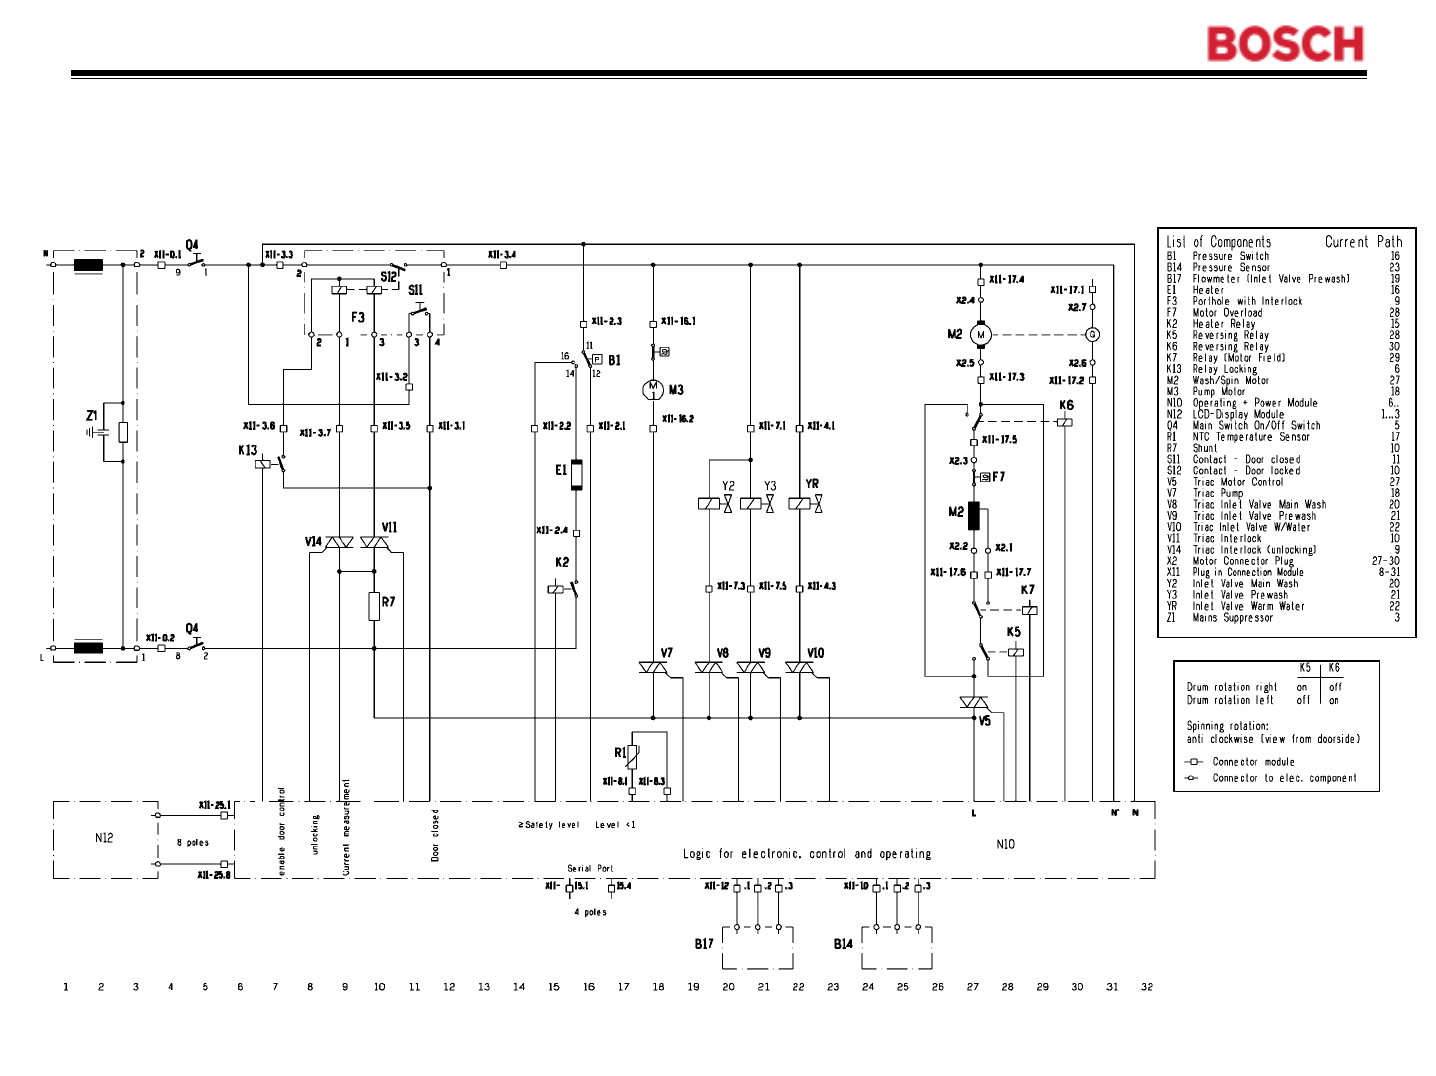 Bosch washer wiring diagram wiring diagrams schematics page 39 of bosch appliances washer wfr2460uc user guide on bomag wiring diagram for wfr 2460uc swarovskicordoba Image collections